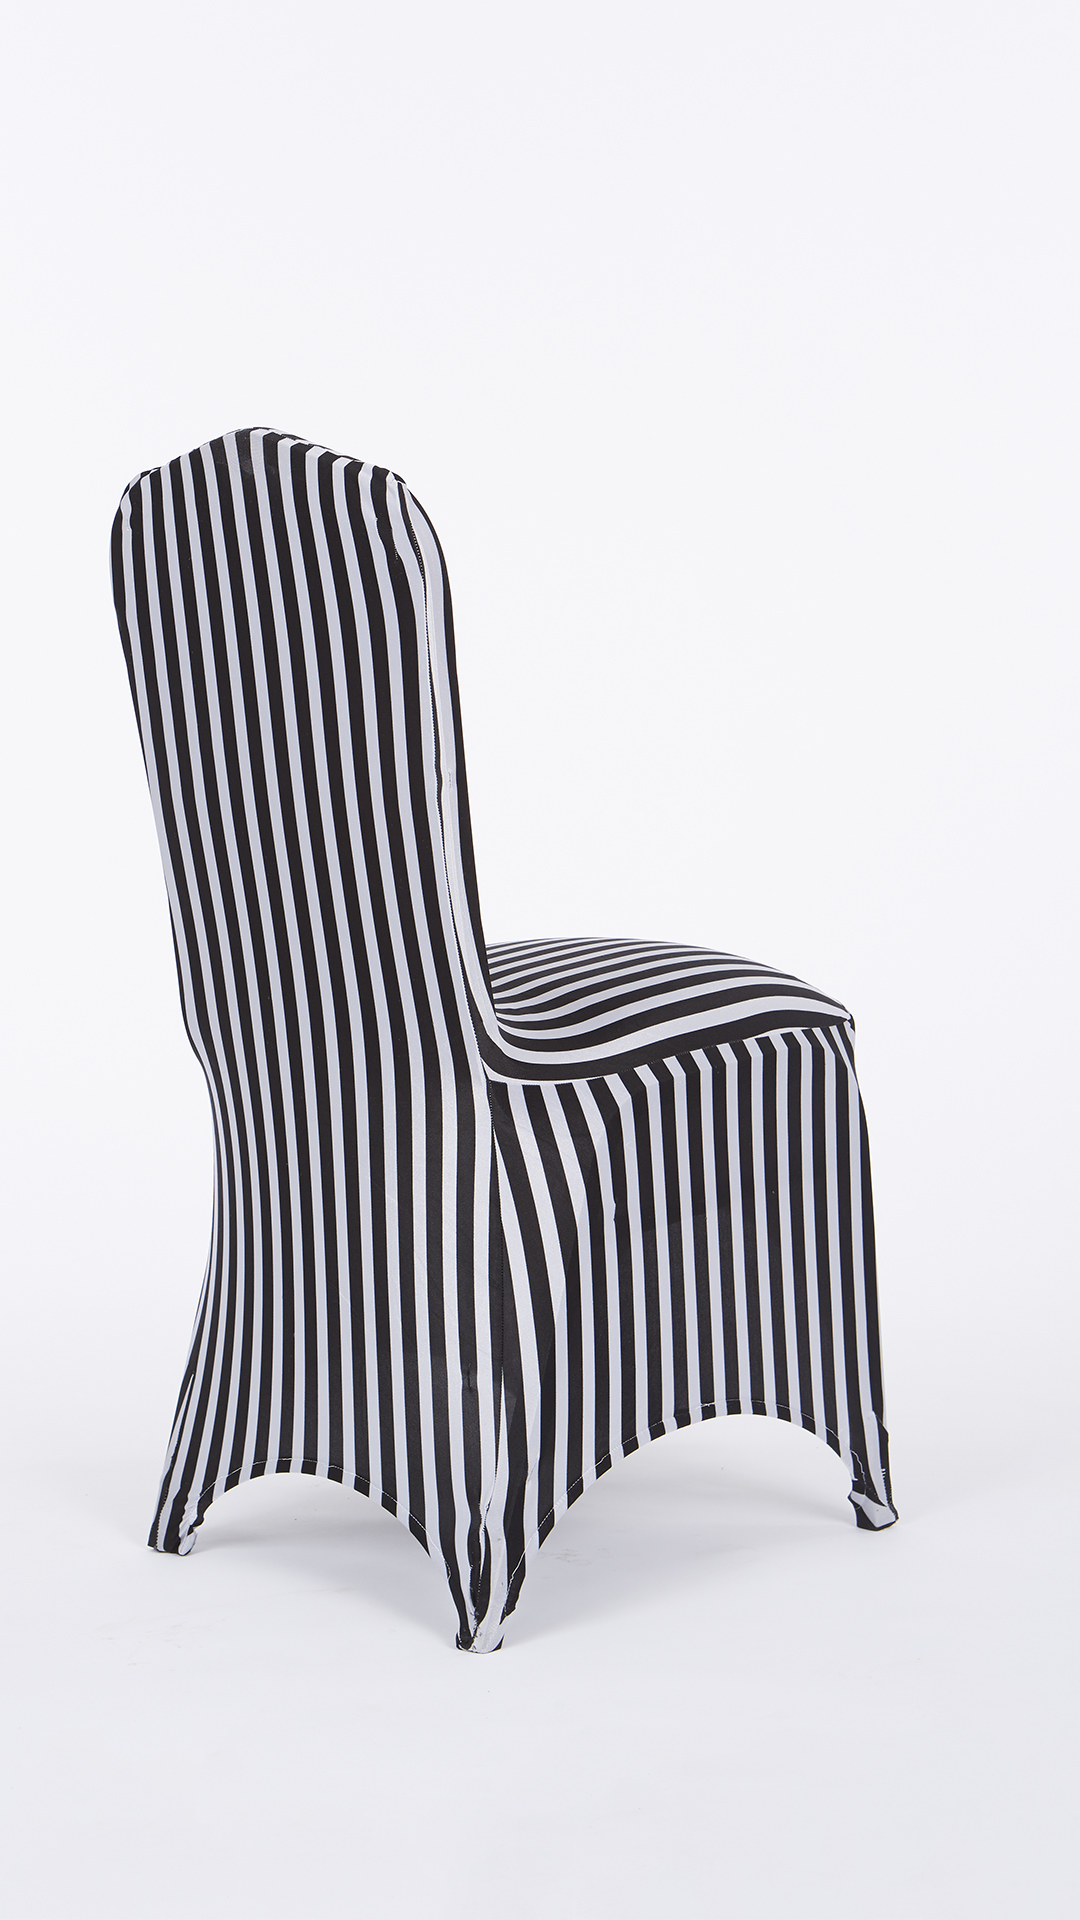 Black White Chair Black And White Stripe Stretch Chair Cover Chair Decor